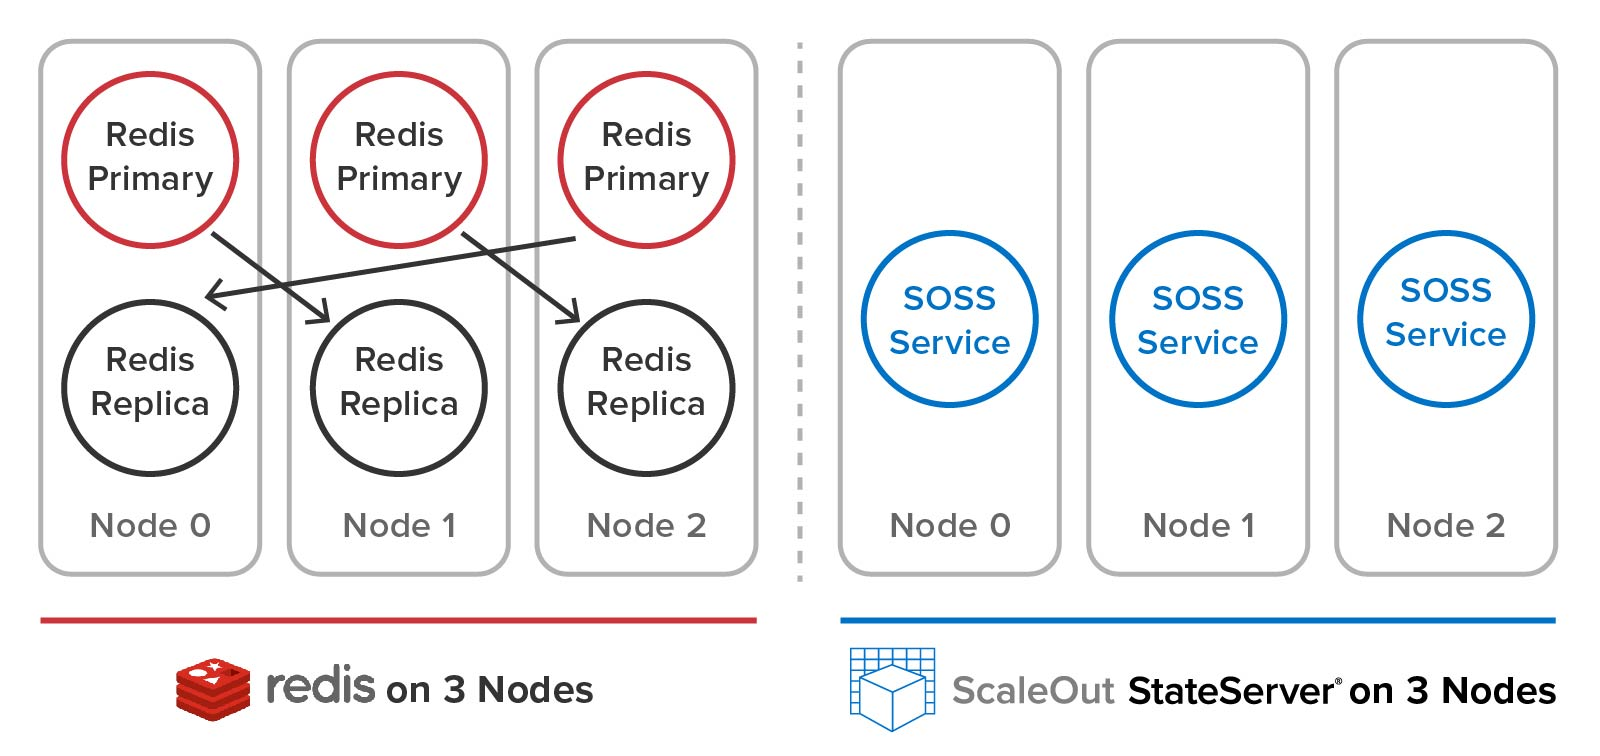 ScaleOut's cluster architecture is much easier to use than Redis